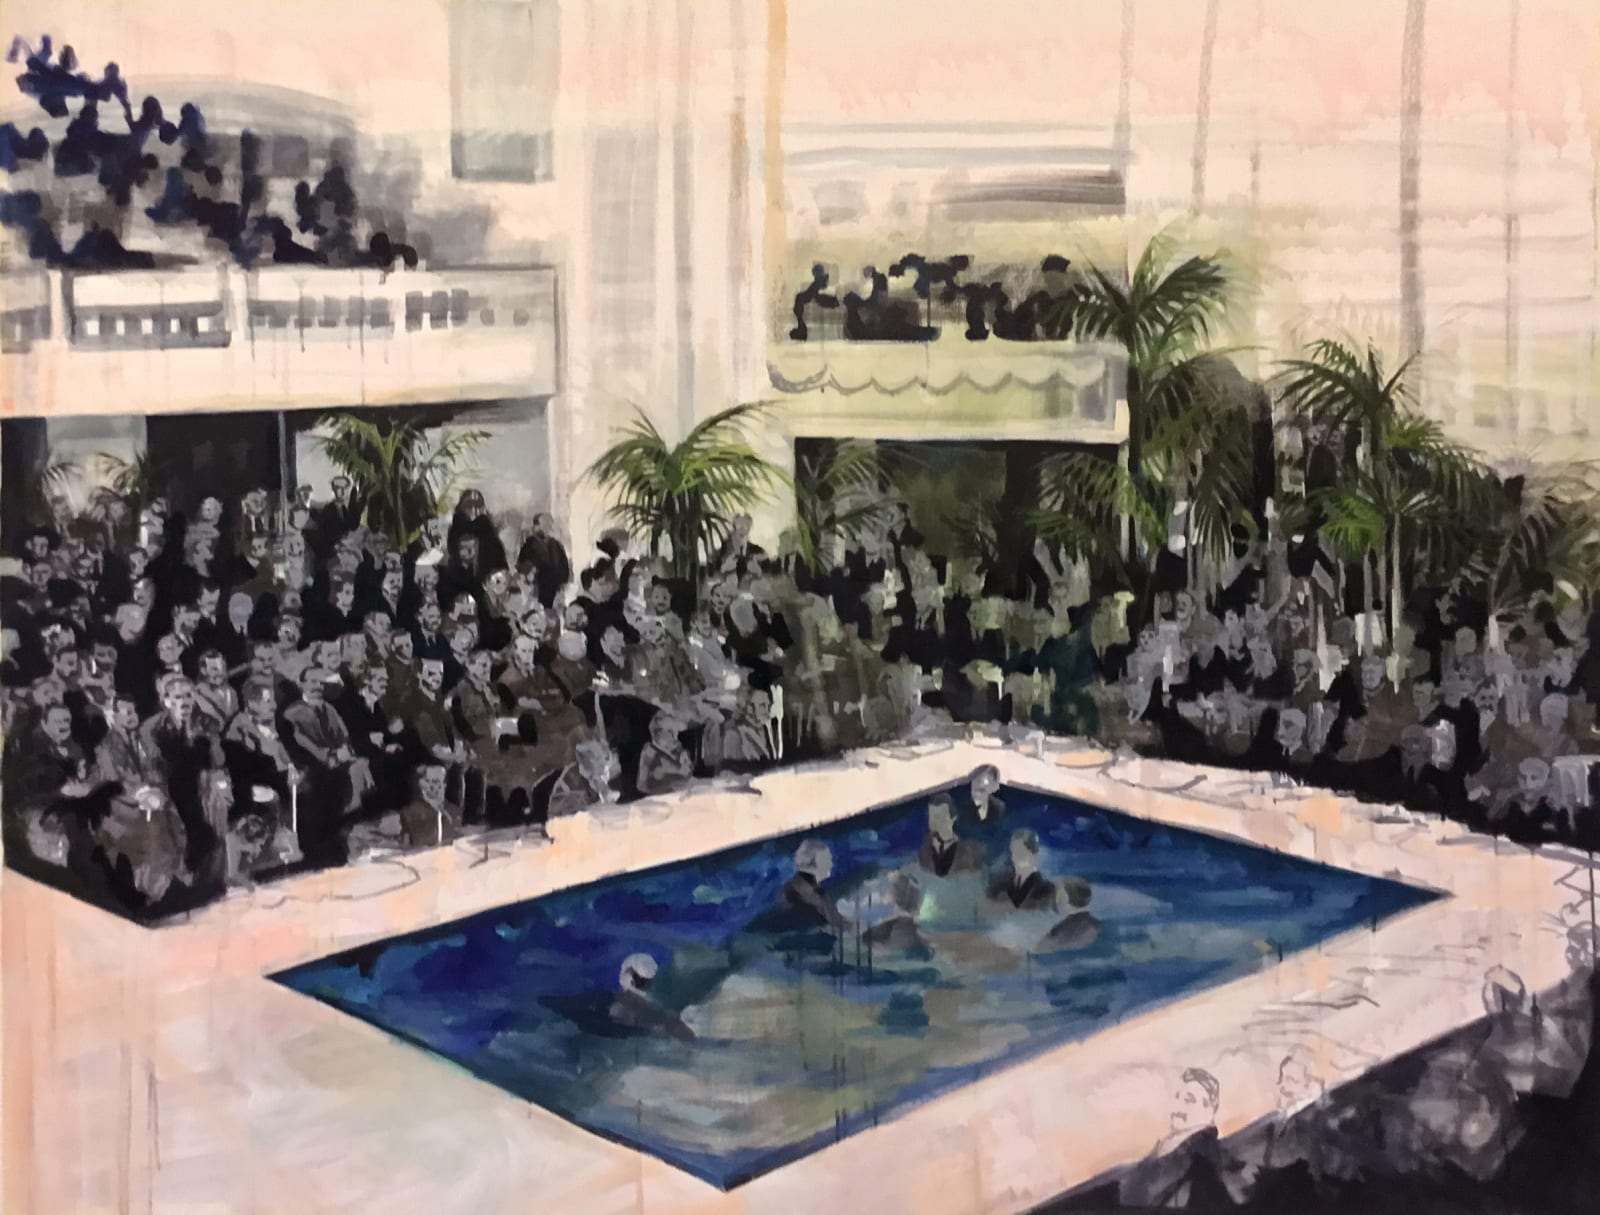 Elizabeth Schwaiger, Pool Crowd, 2016